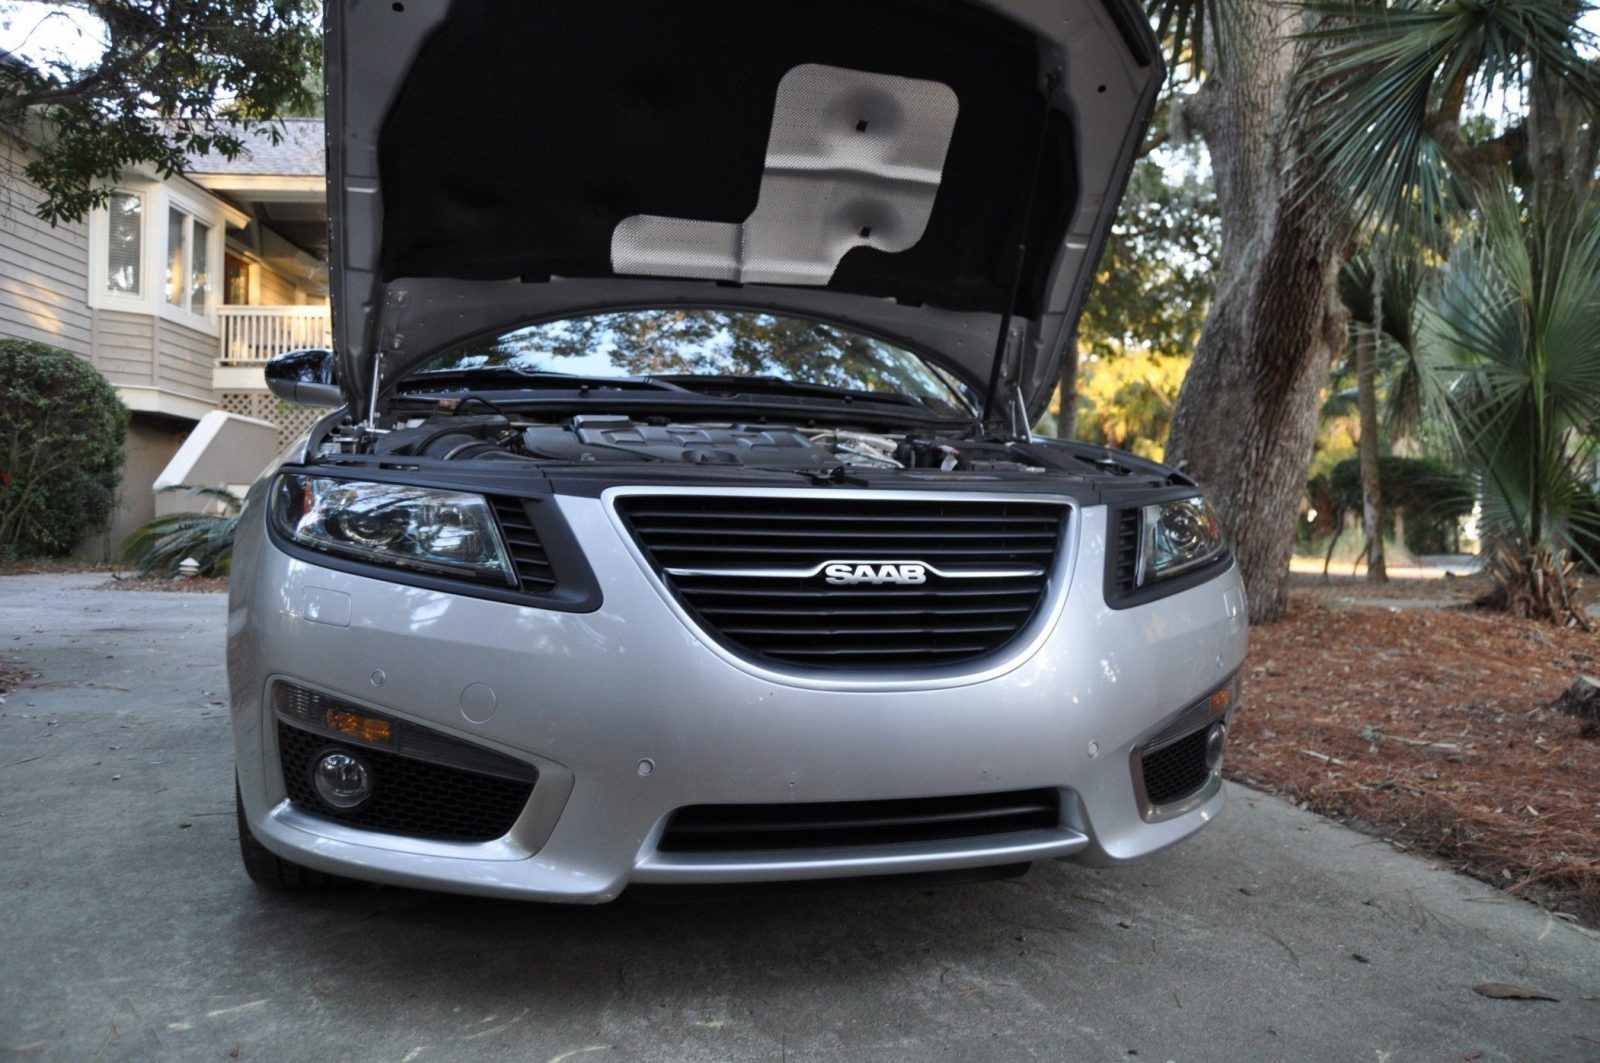 2013 SAAB 9-5 Turbo6 XWD Aero -- 48 HQ Photos -- The Coolest AWD, Turbo V6 Limo You Cannot Buy 41